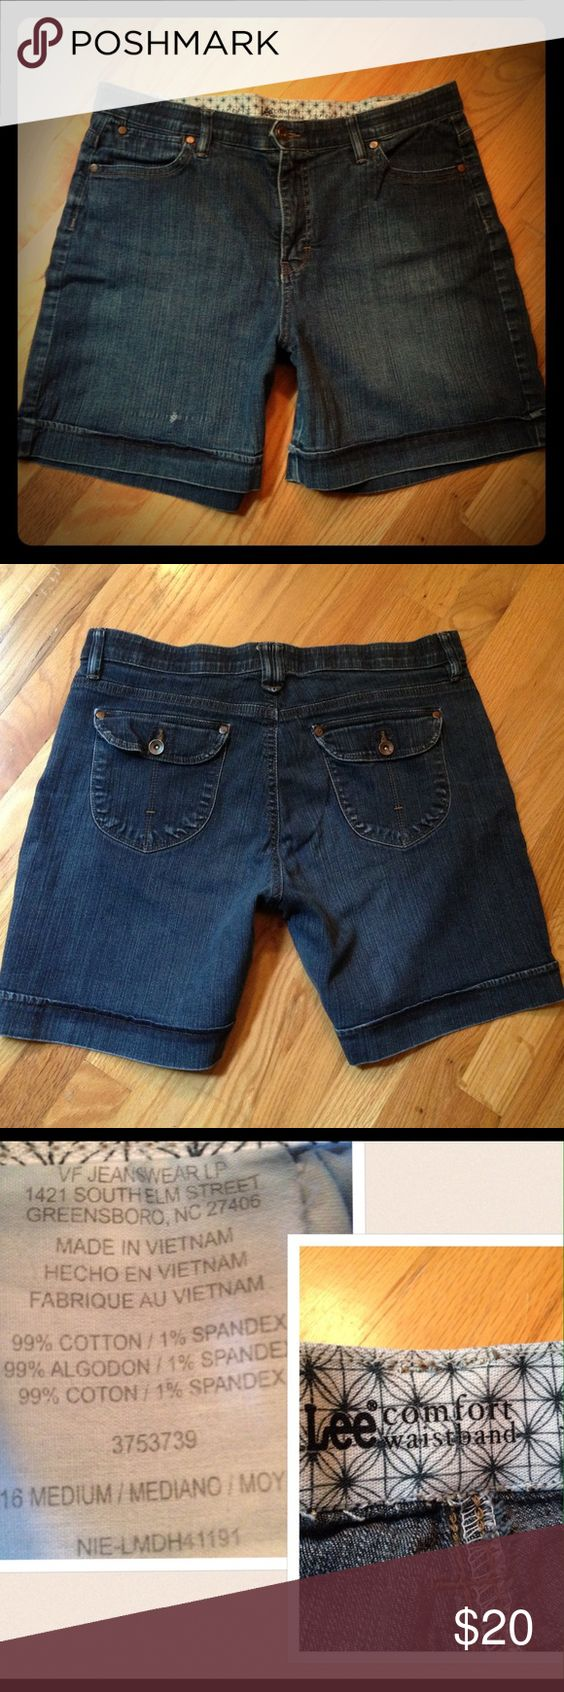 Lee Comfort Waistband Jean Shorts Sz 16 Lee Comfort Waistband Jean Shorts Sz 16  Used Jean with Snag on front note picture, other than that great Condition Lee Shorts Jean Shorts